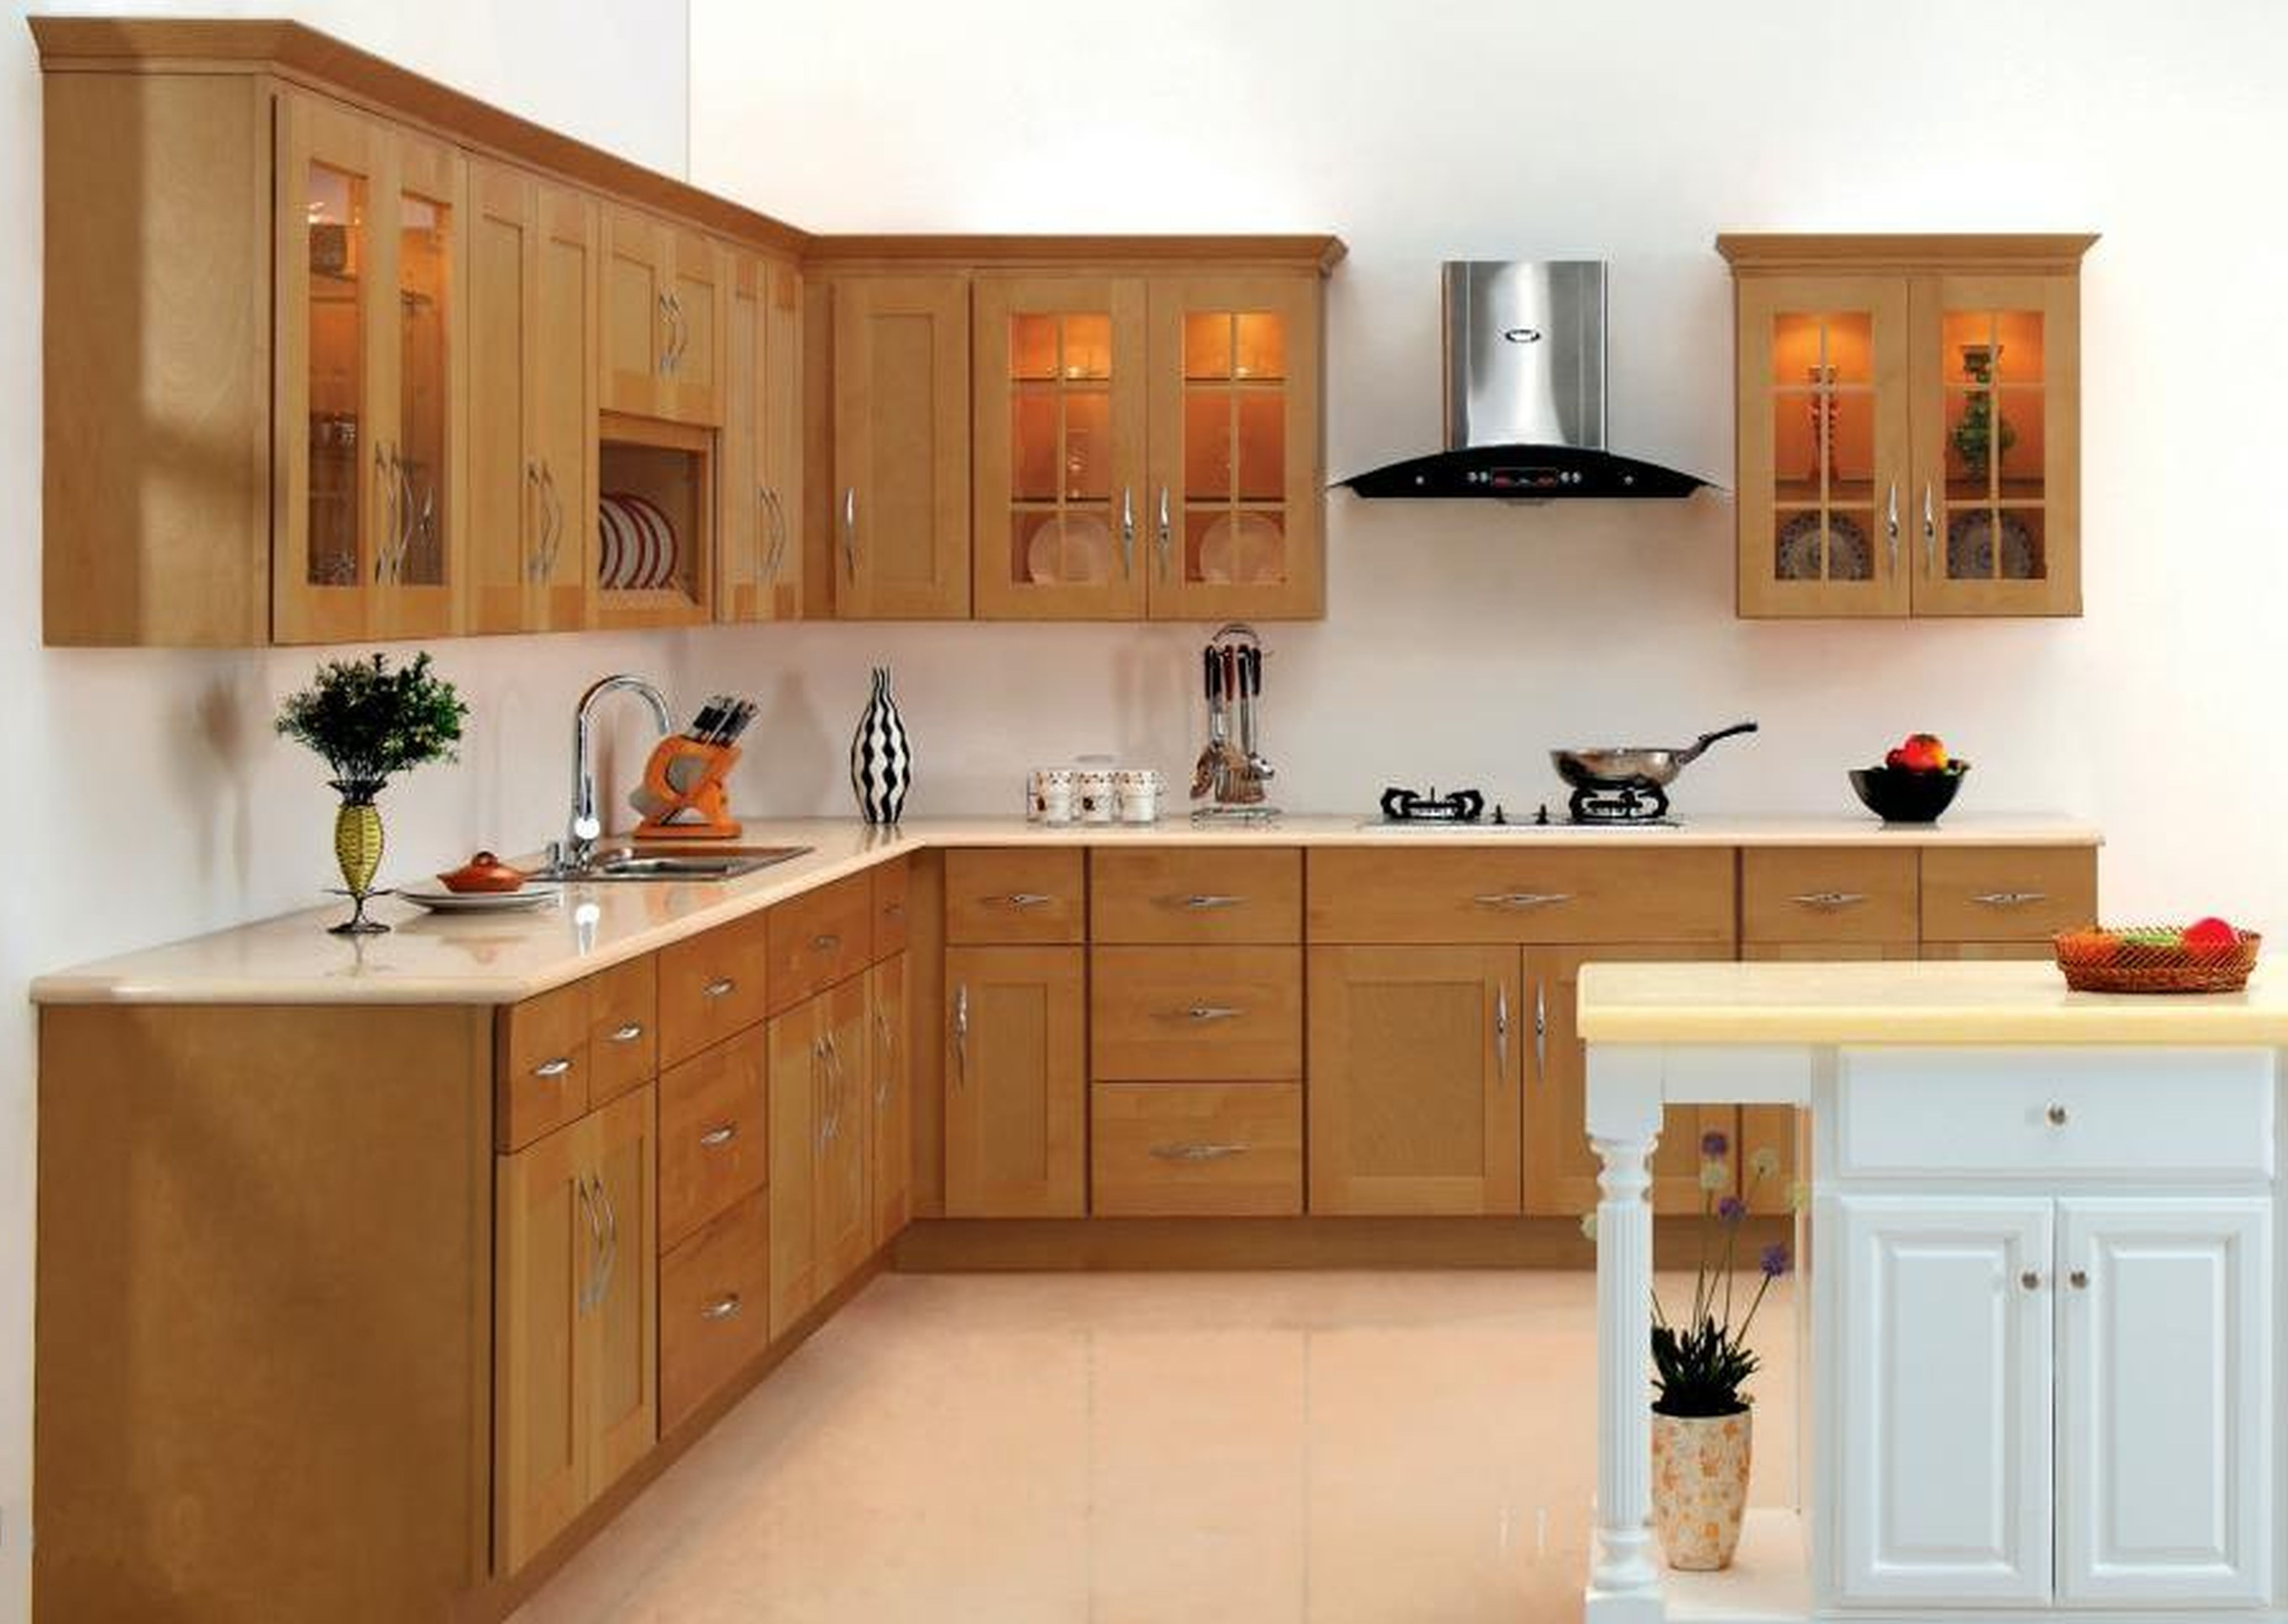 Kitchen Renovation Simple Traditional Design With